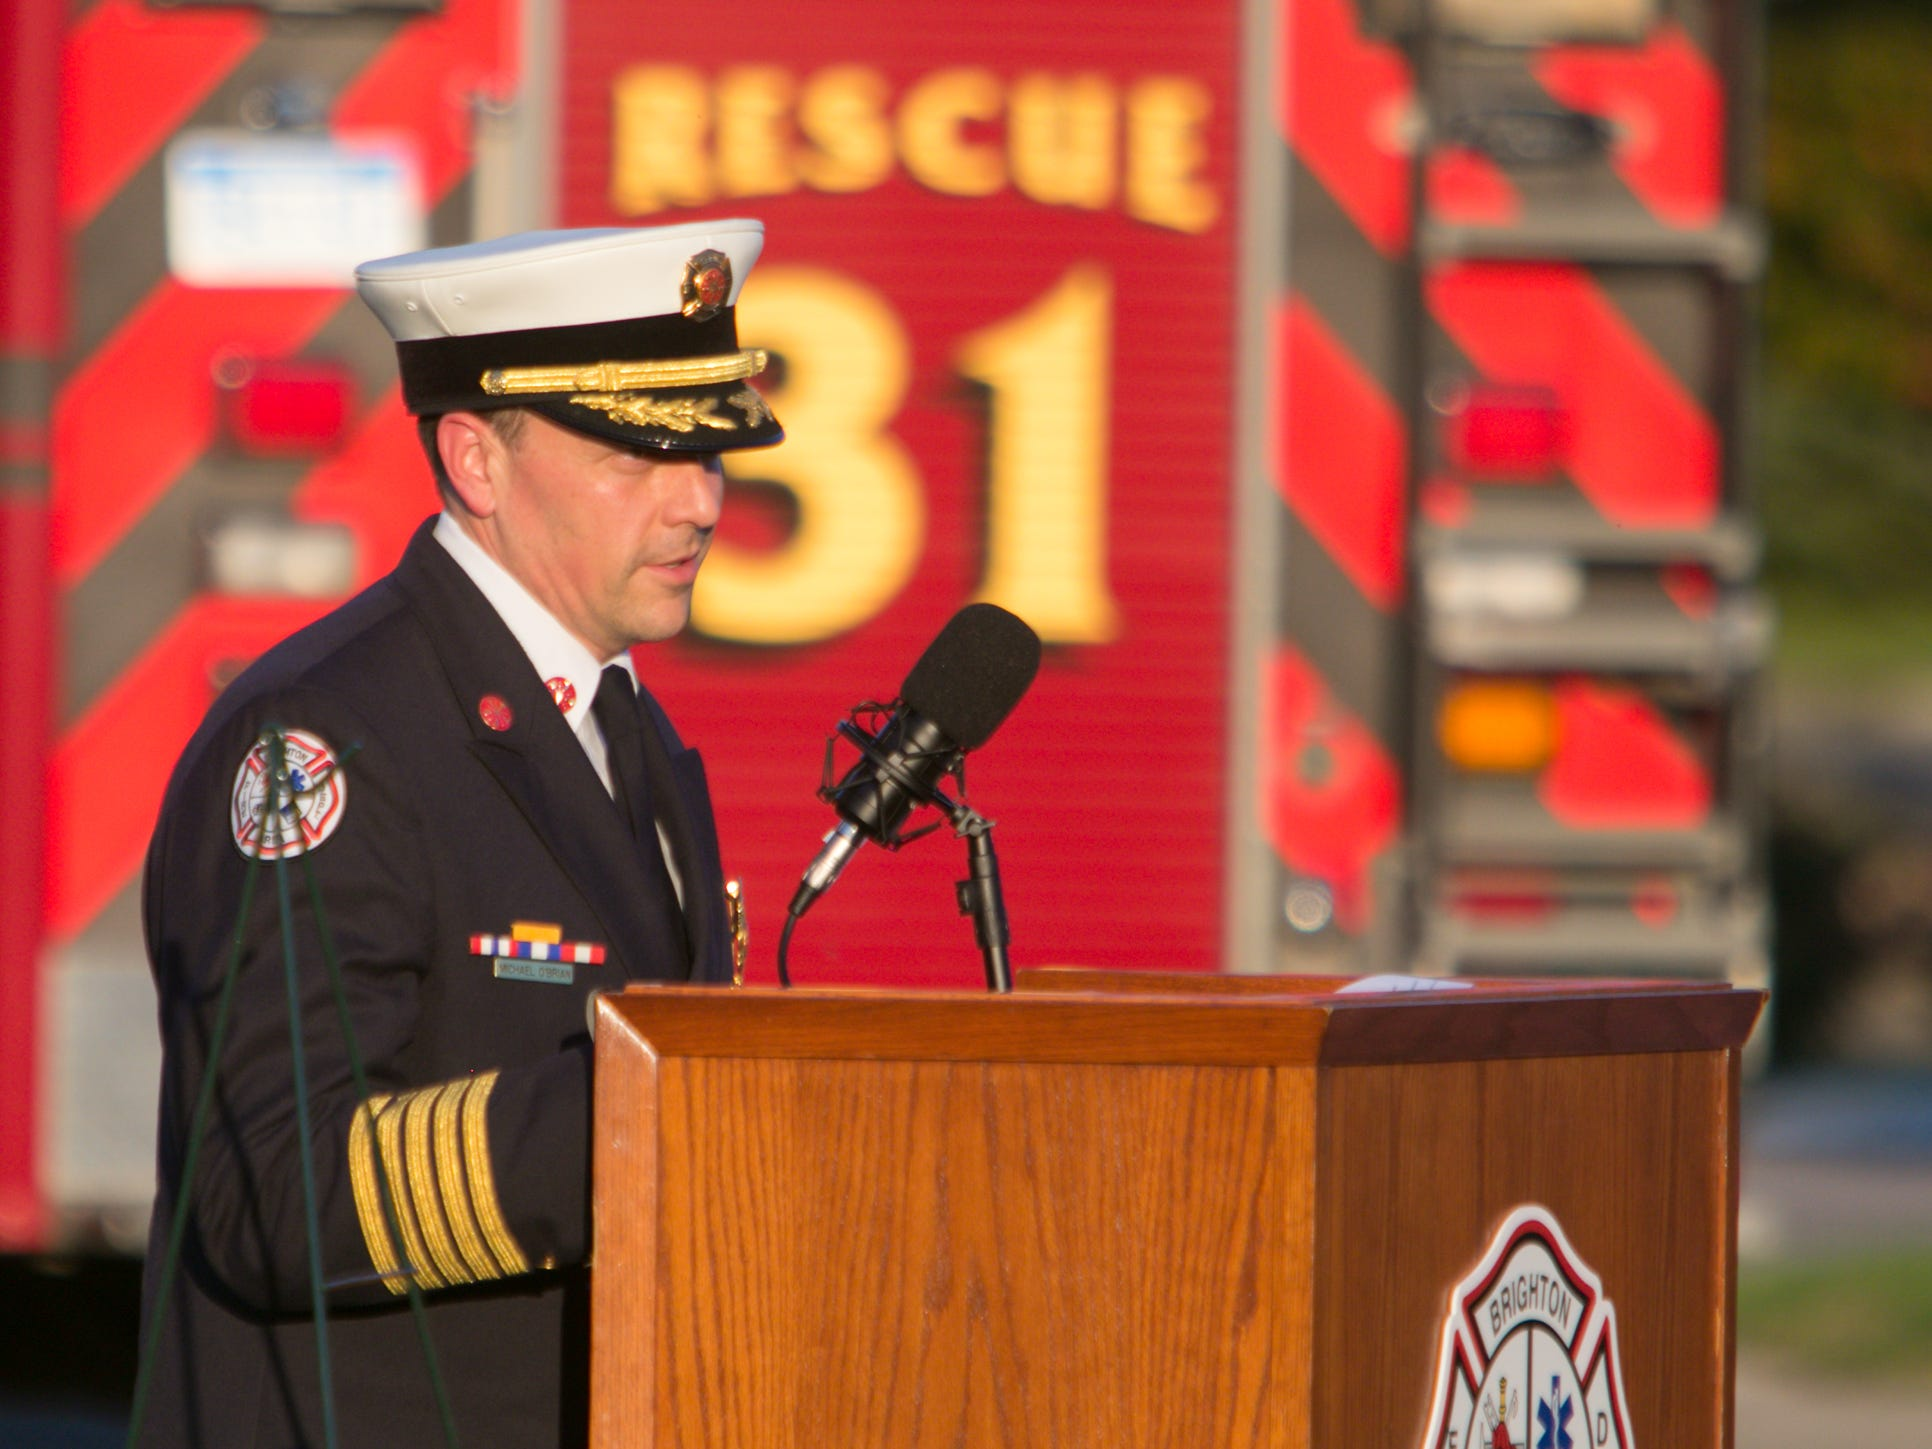 Brighton Area Fire Authority Chief Michael O'Brian wraps up the 9/11 ceremony held at Station 31 Tuesday, Sept. 11, 2018.